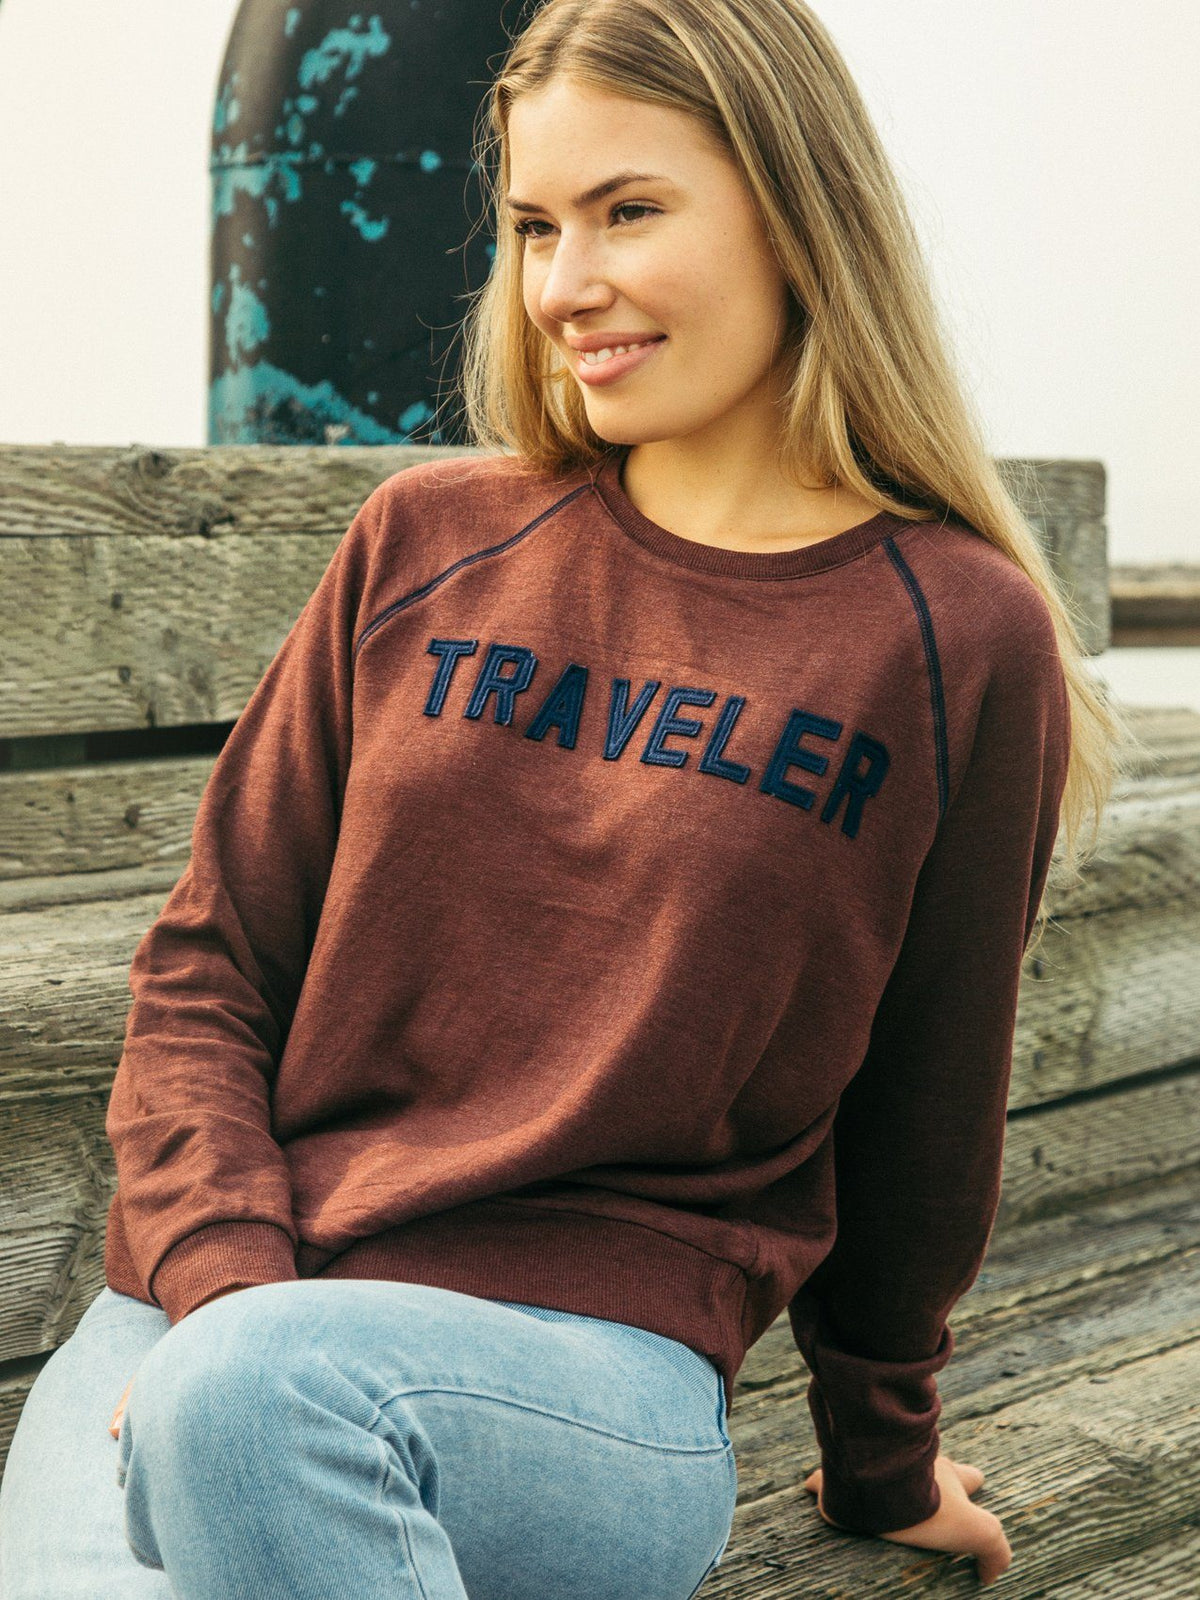 Tory Traveler Sweatshirt Sweatshirt Thread & Supply Garnet Red S